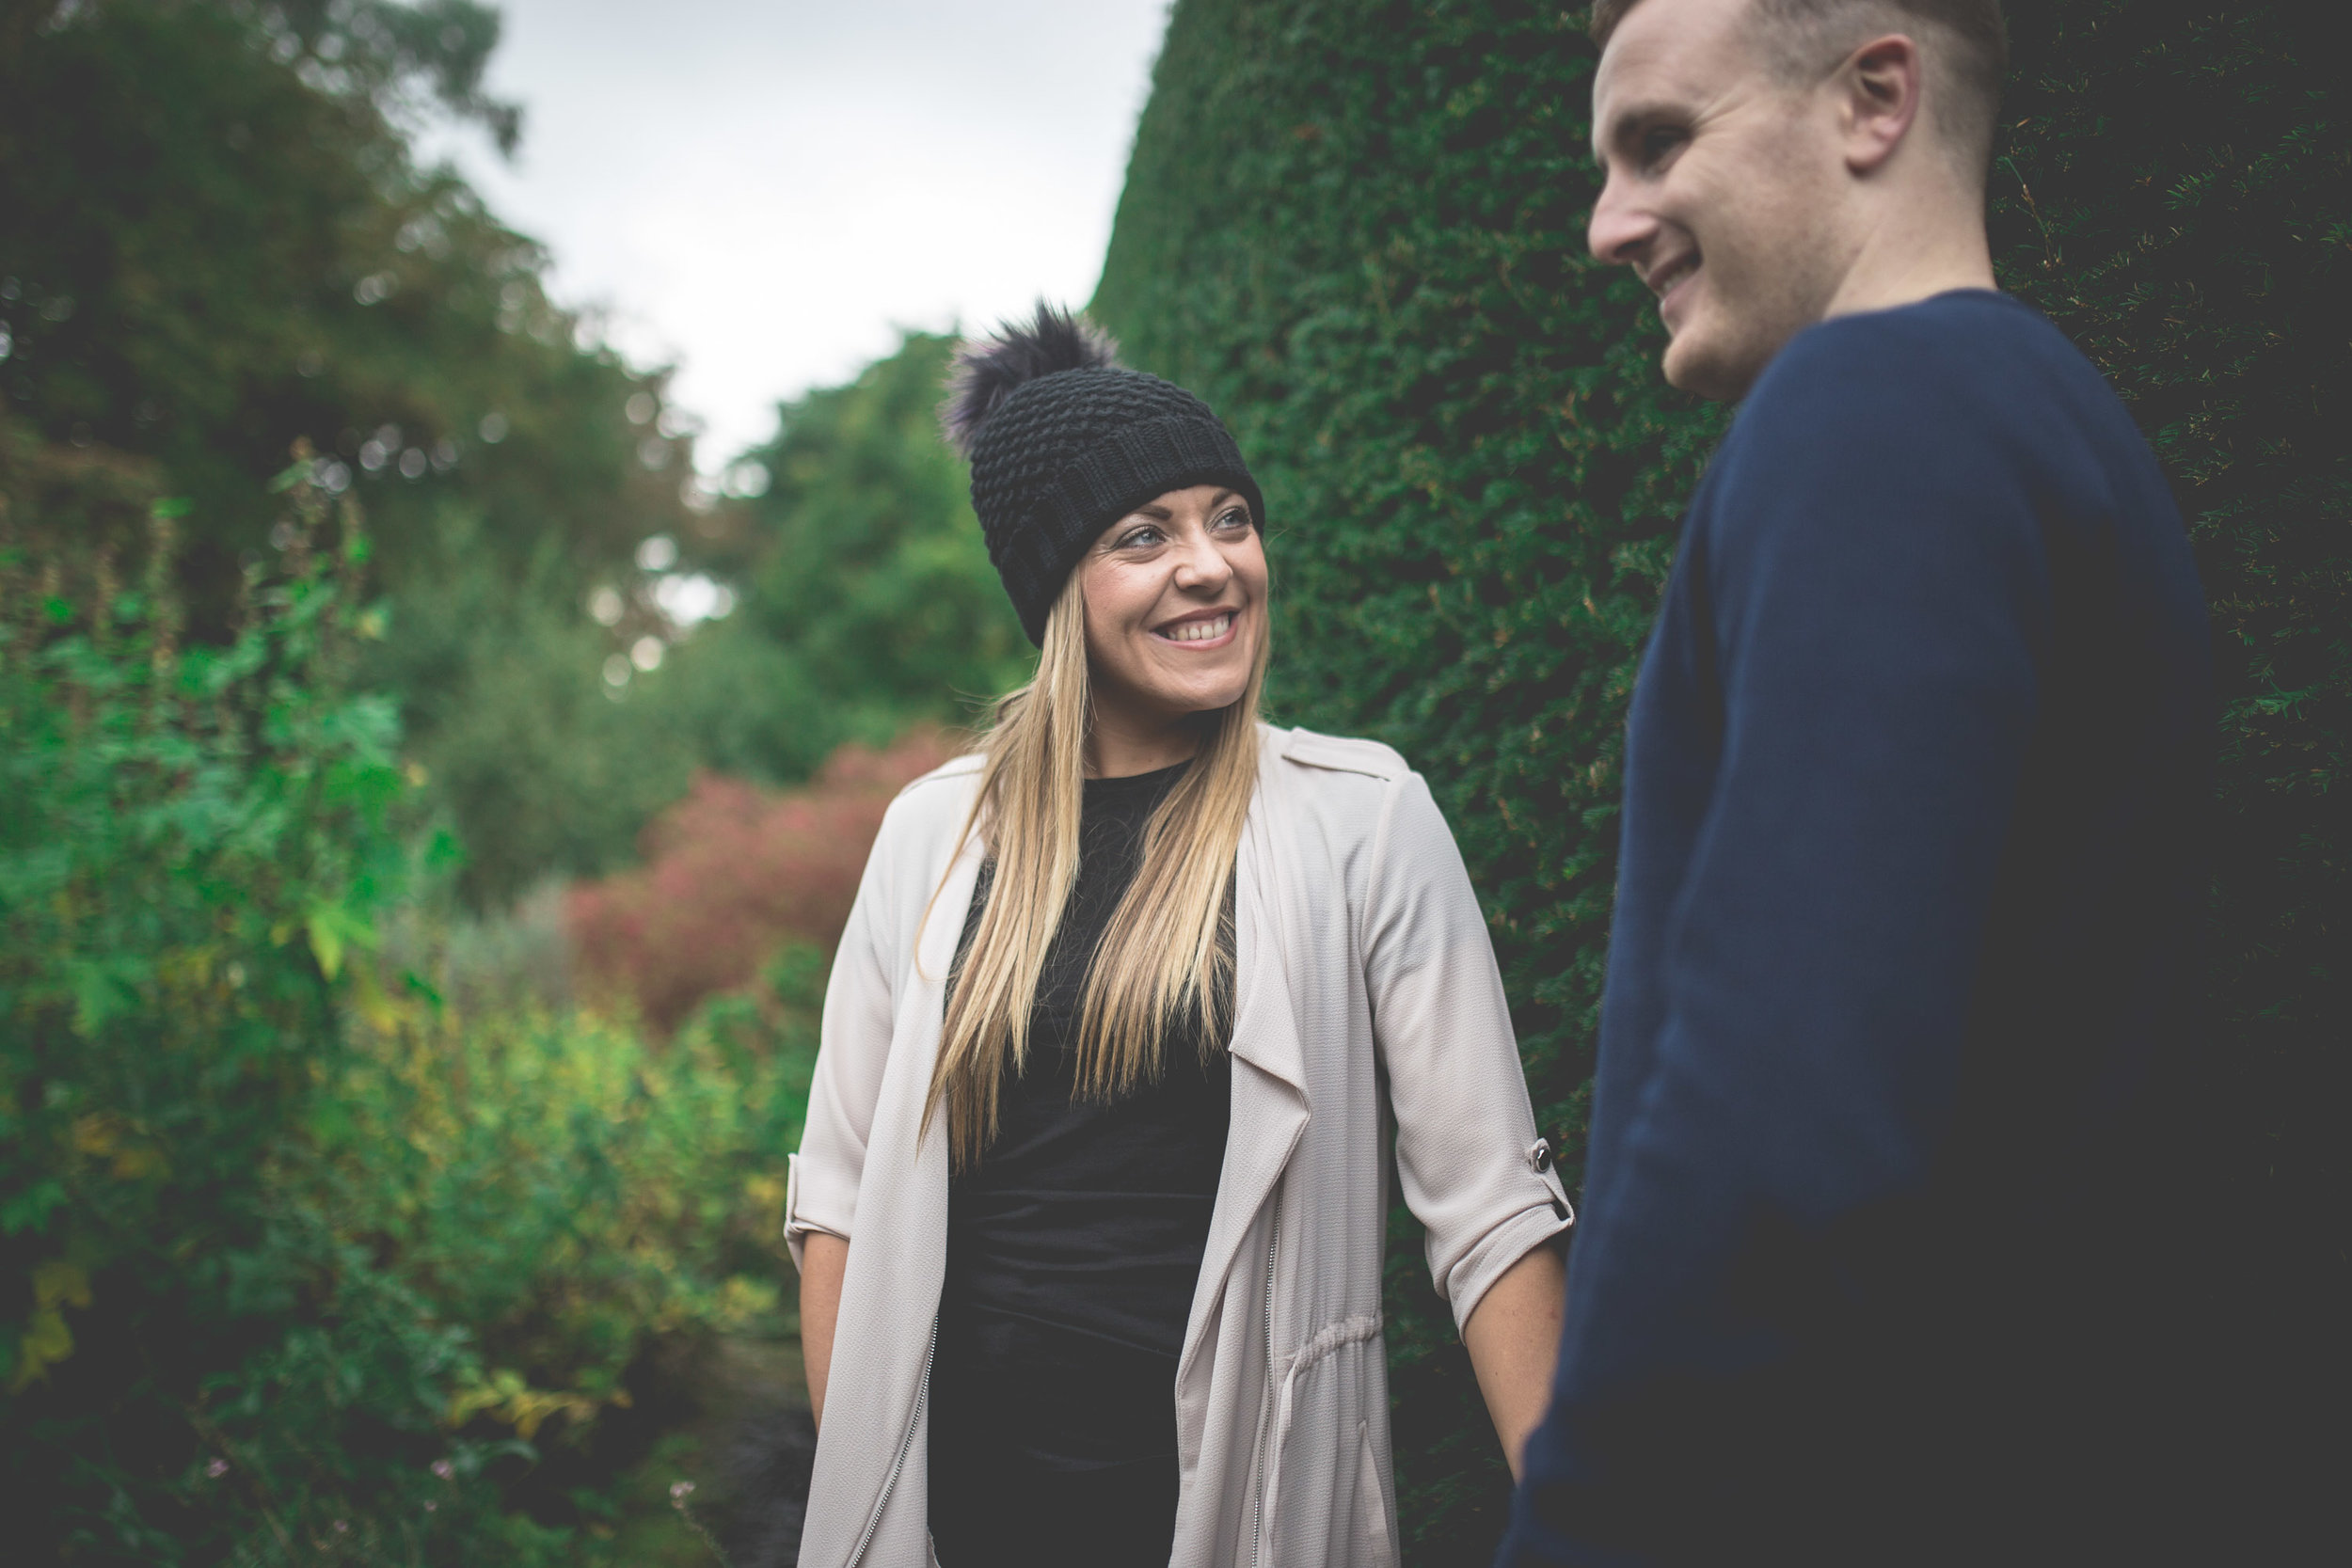 Conor & Mary-Jo Engagement Shoot Mount Stewart County Down-26.jpg